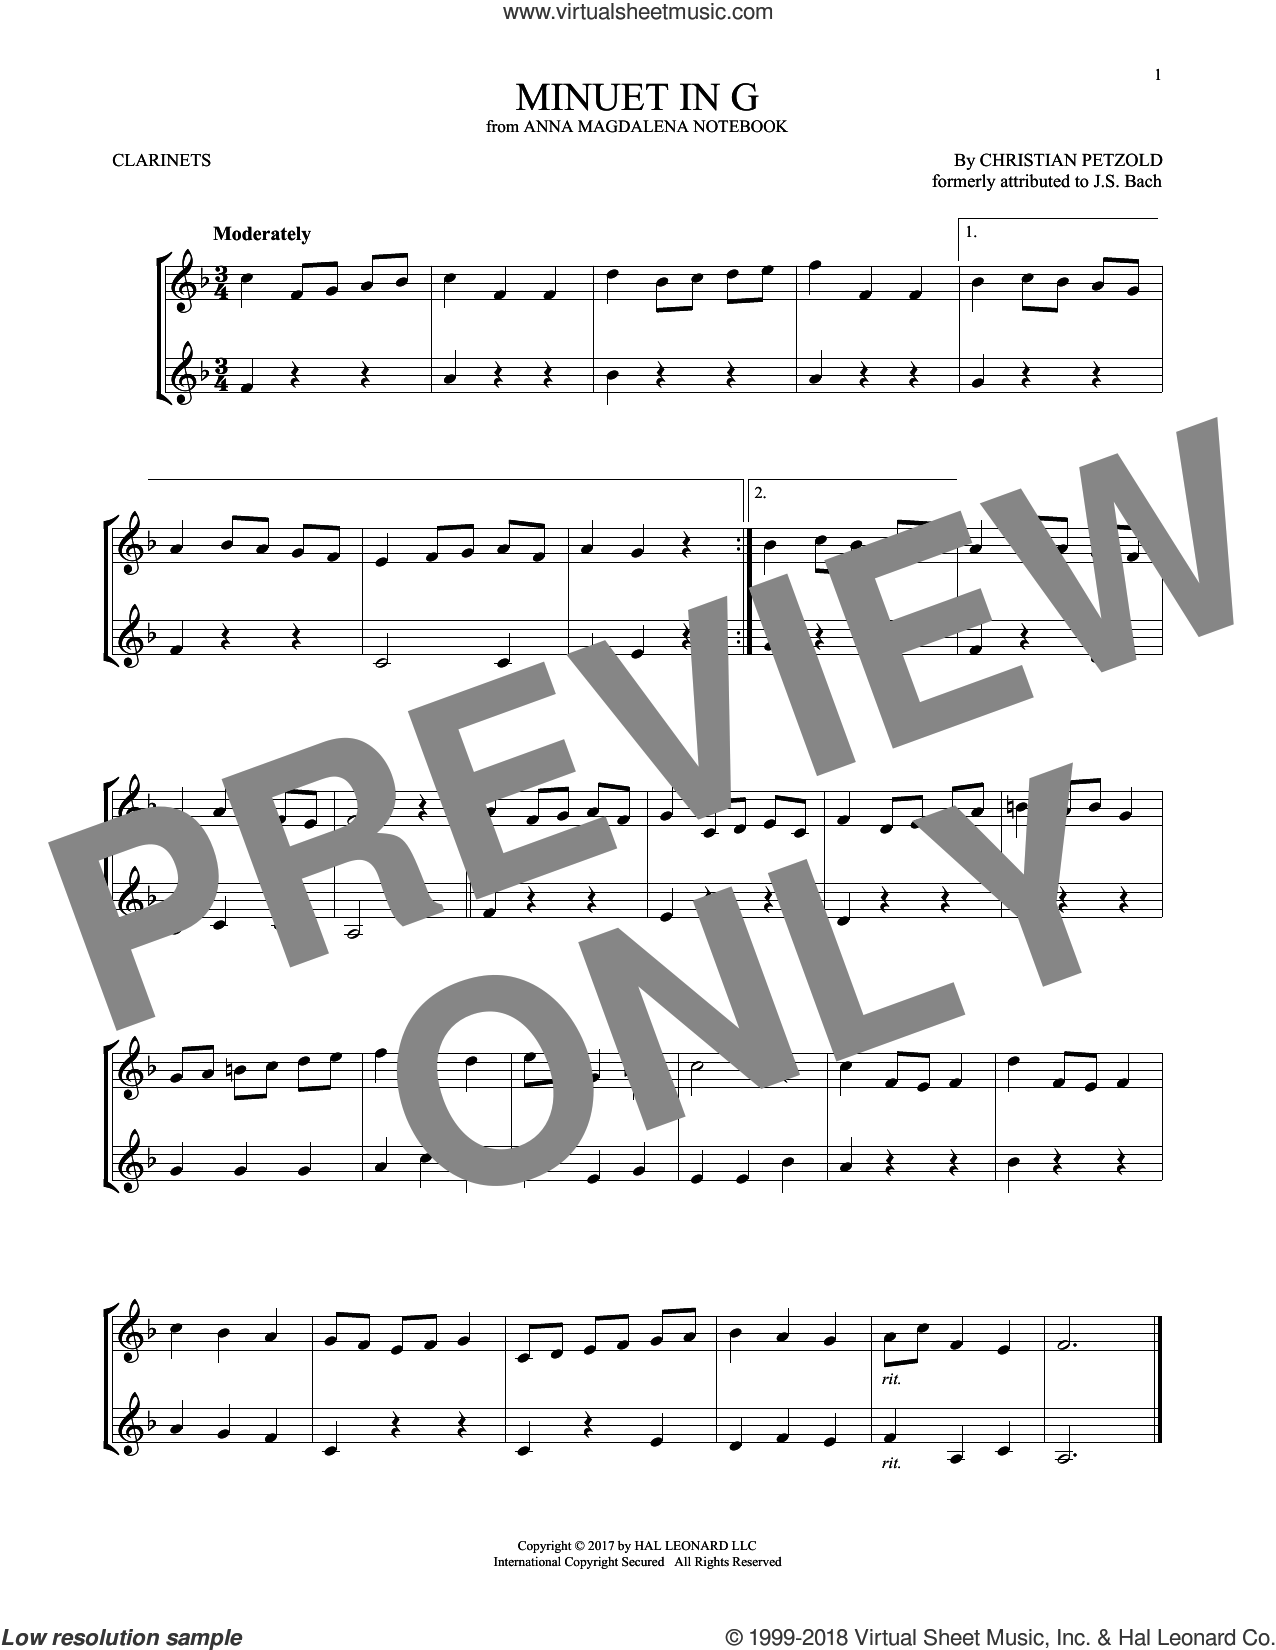 Minuet In G Major, BWV Anh. 114 sheet music for two clarinets (duets) by Christian Petzold, classical score, intermediate skill level